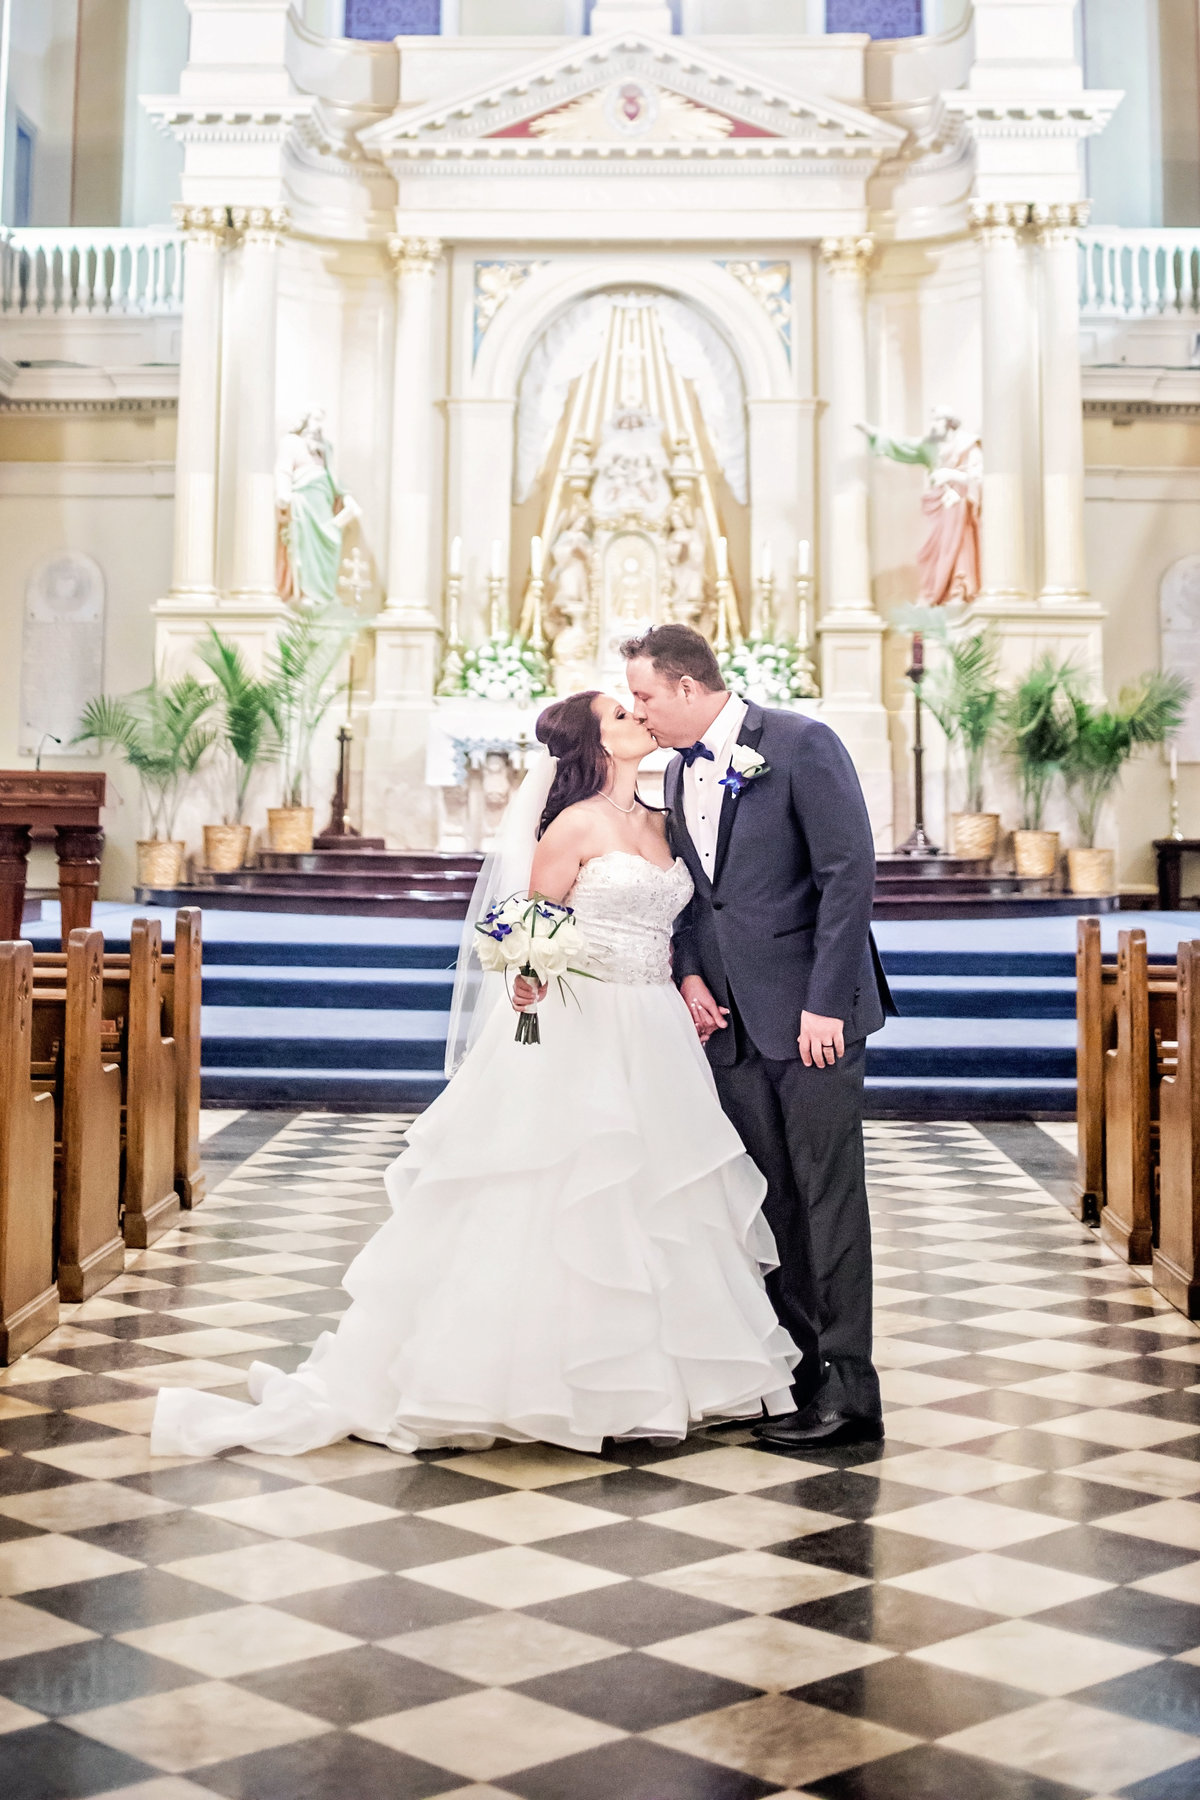 chicboutiquephotography_Chris_kelly_wedding_362